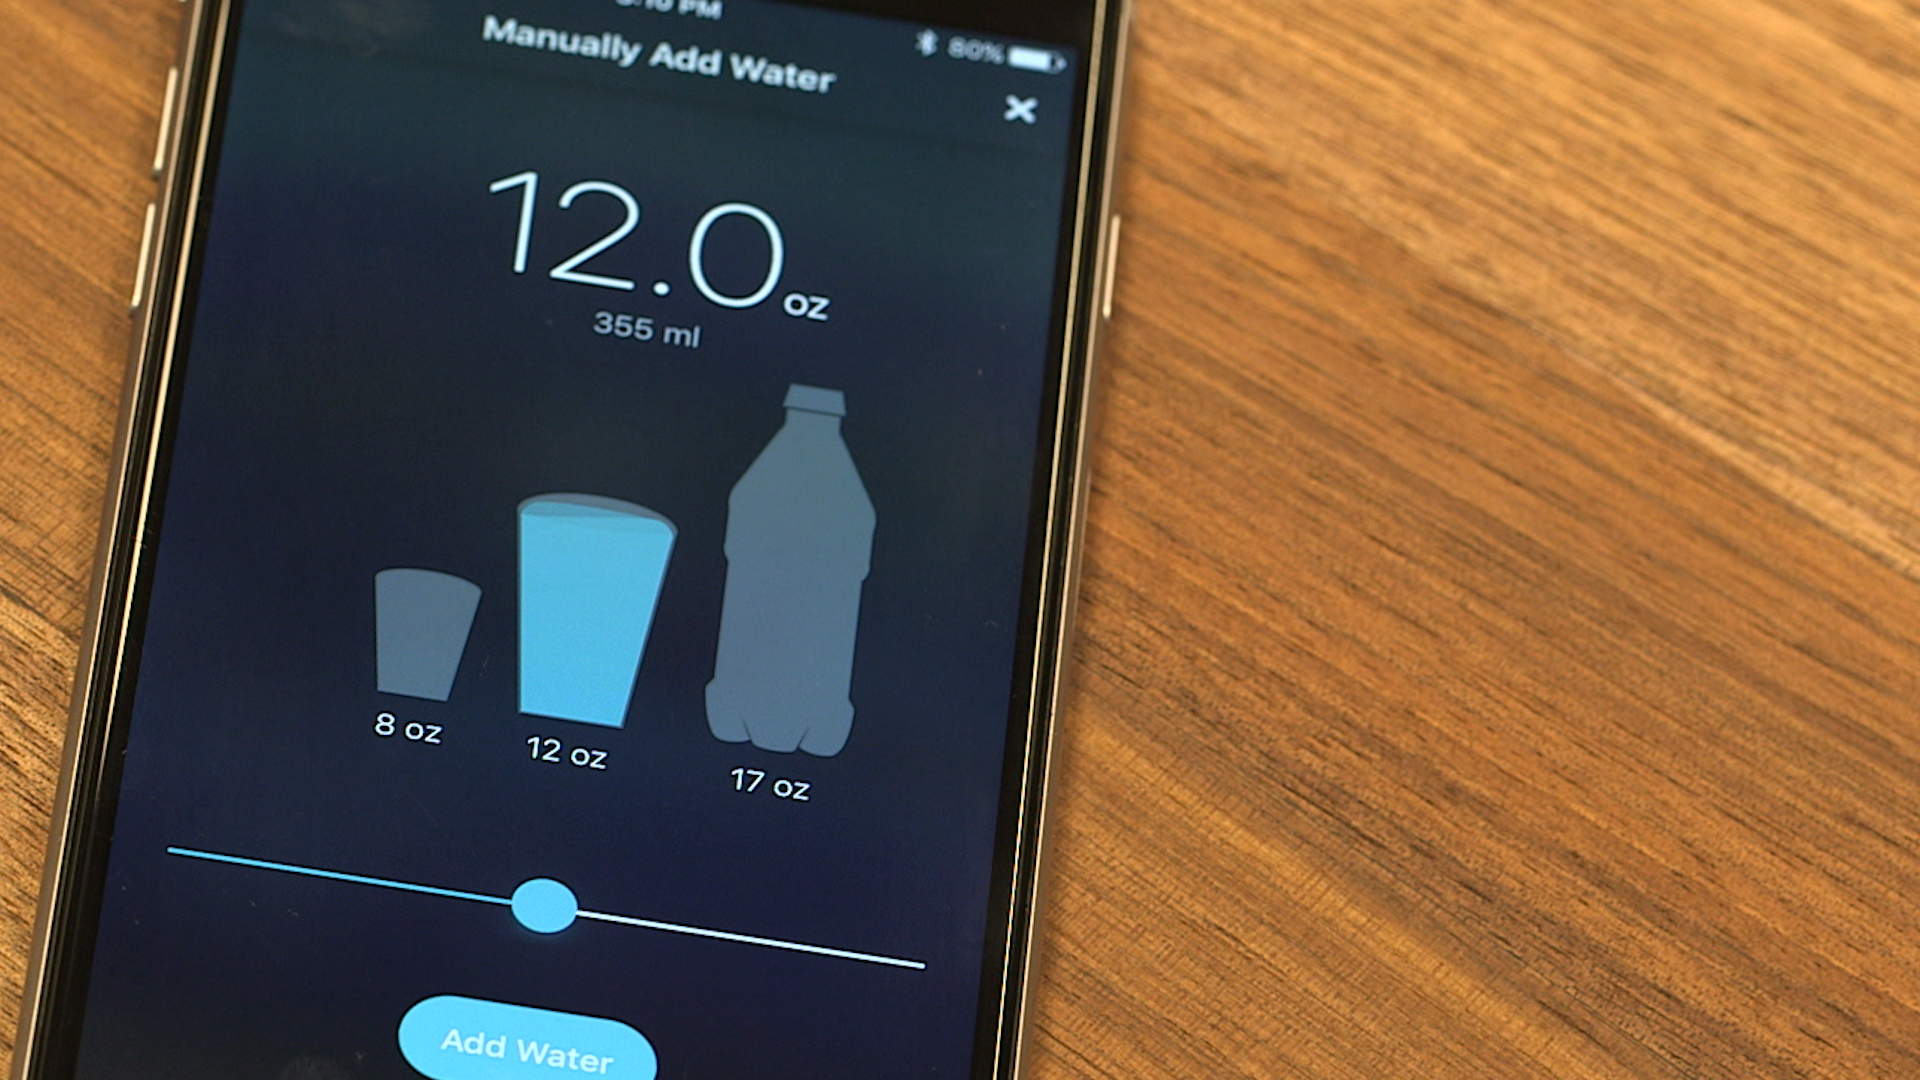 Video: Track your food and drink intake with tech